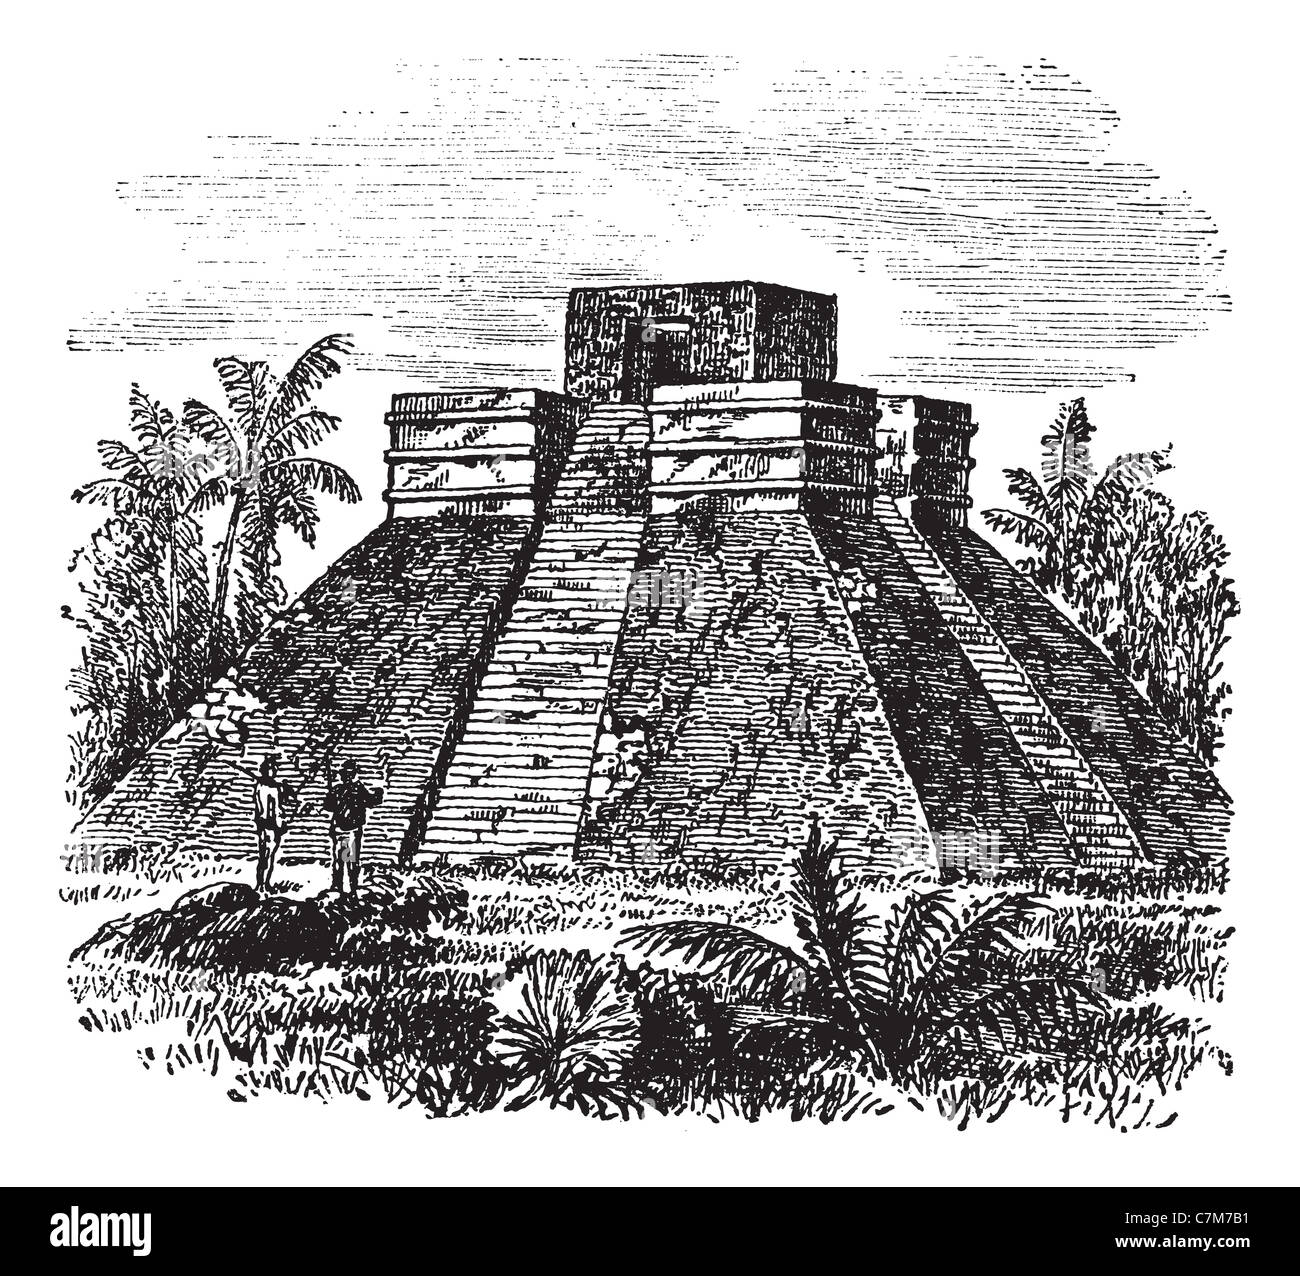 Palenque Pyramid temple in Mexico, during the 1890s, vintage engraving. Old engraved illustration of Palenque Pyramid - Stock Image